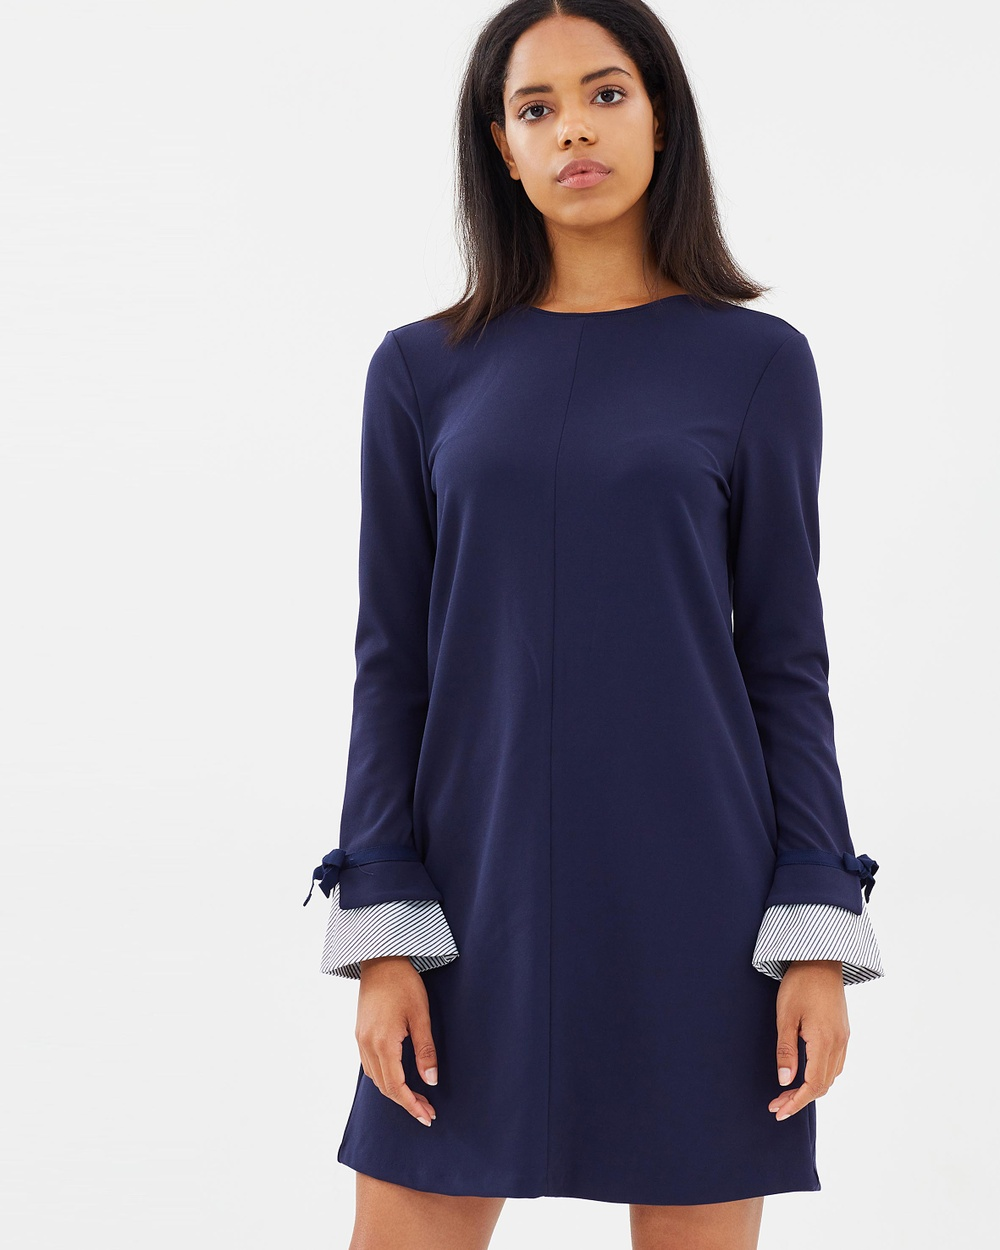 M.N.G Lolacami Dress Dresses Navy Lolacami Dress